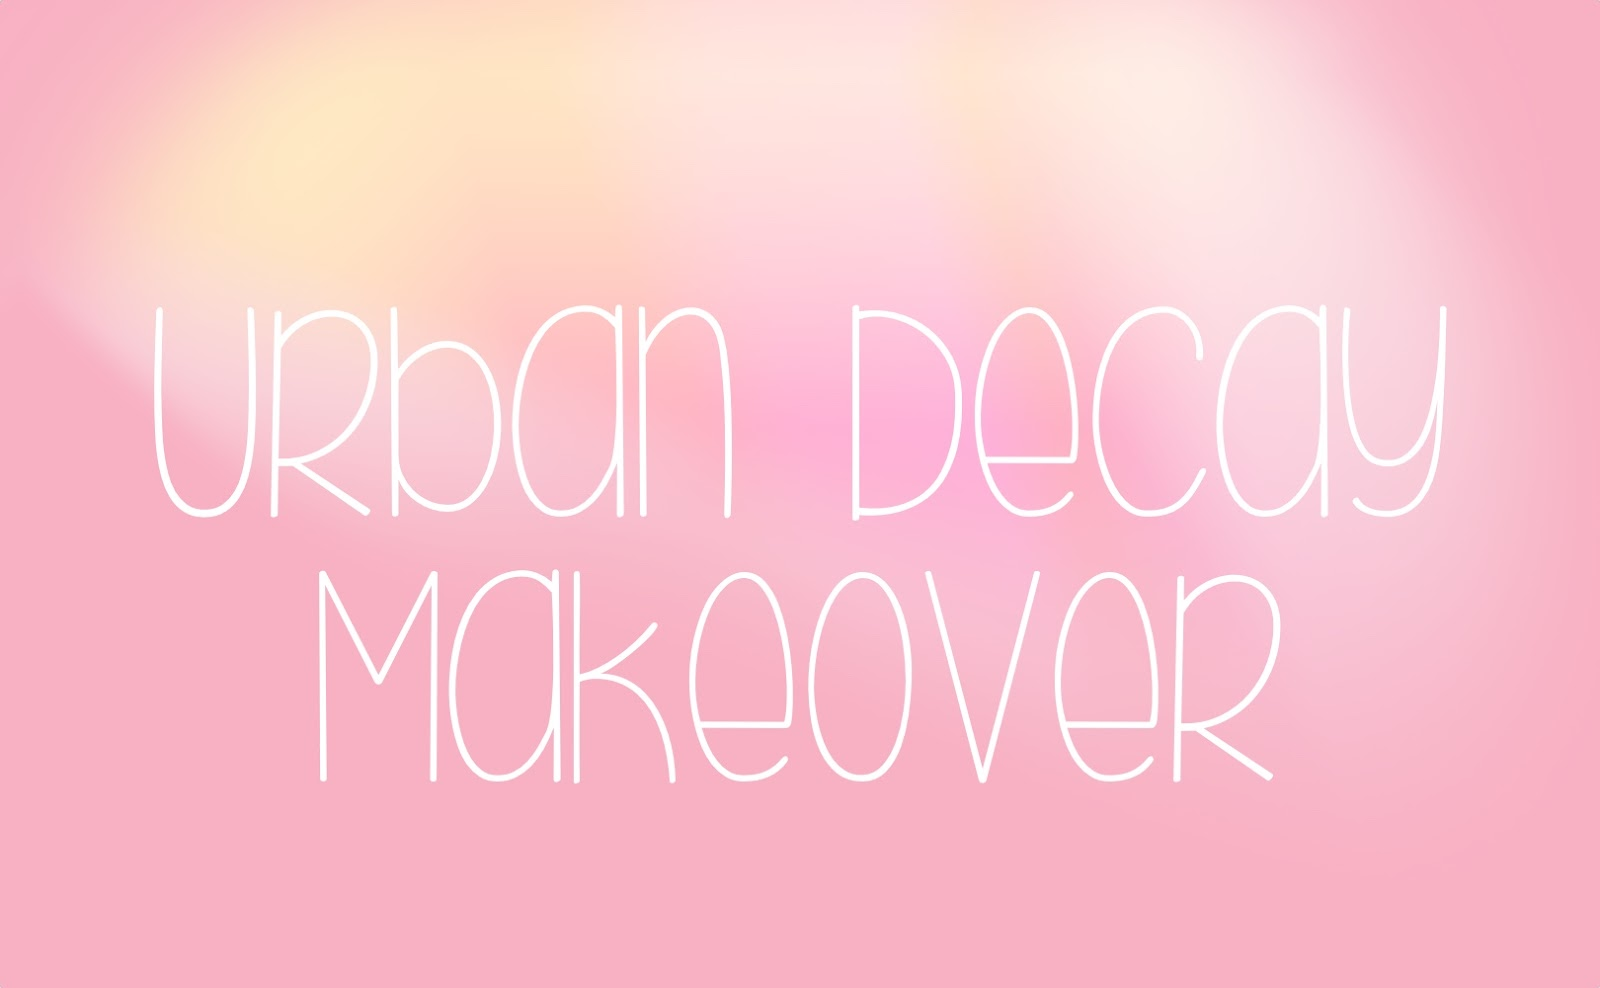 urban decay makeover experience